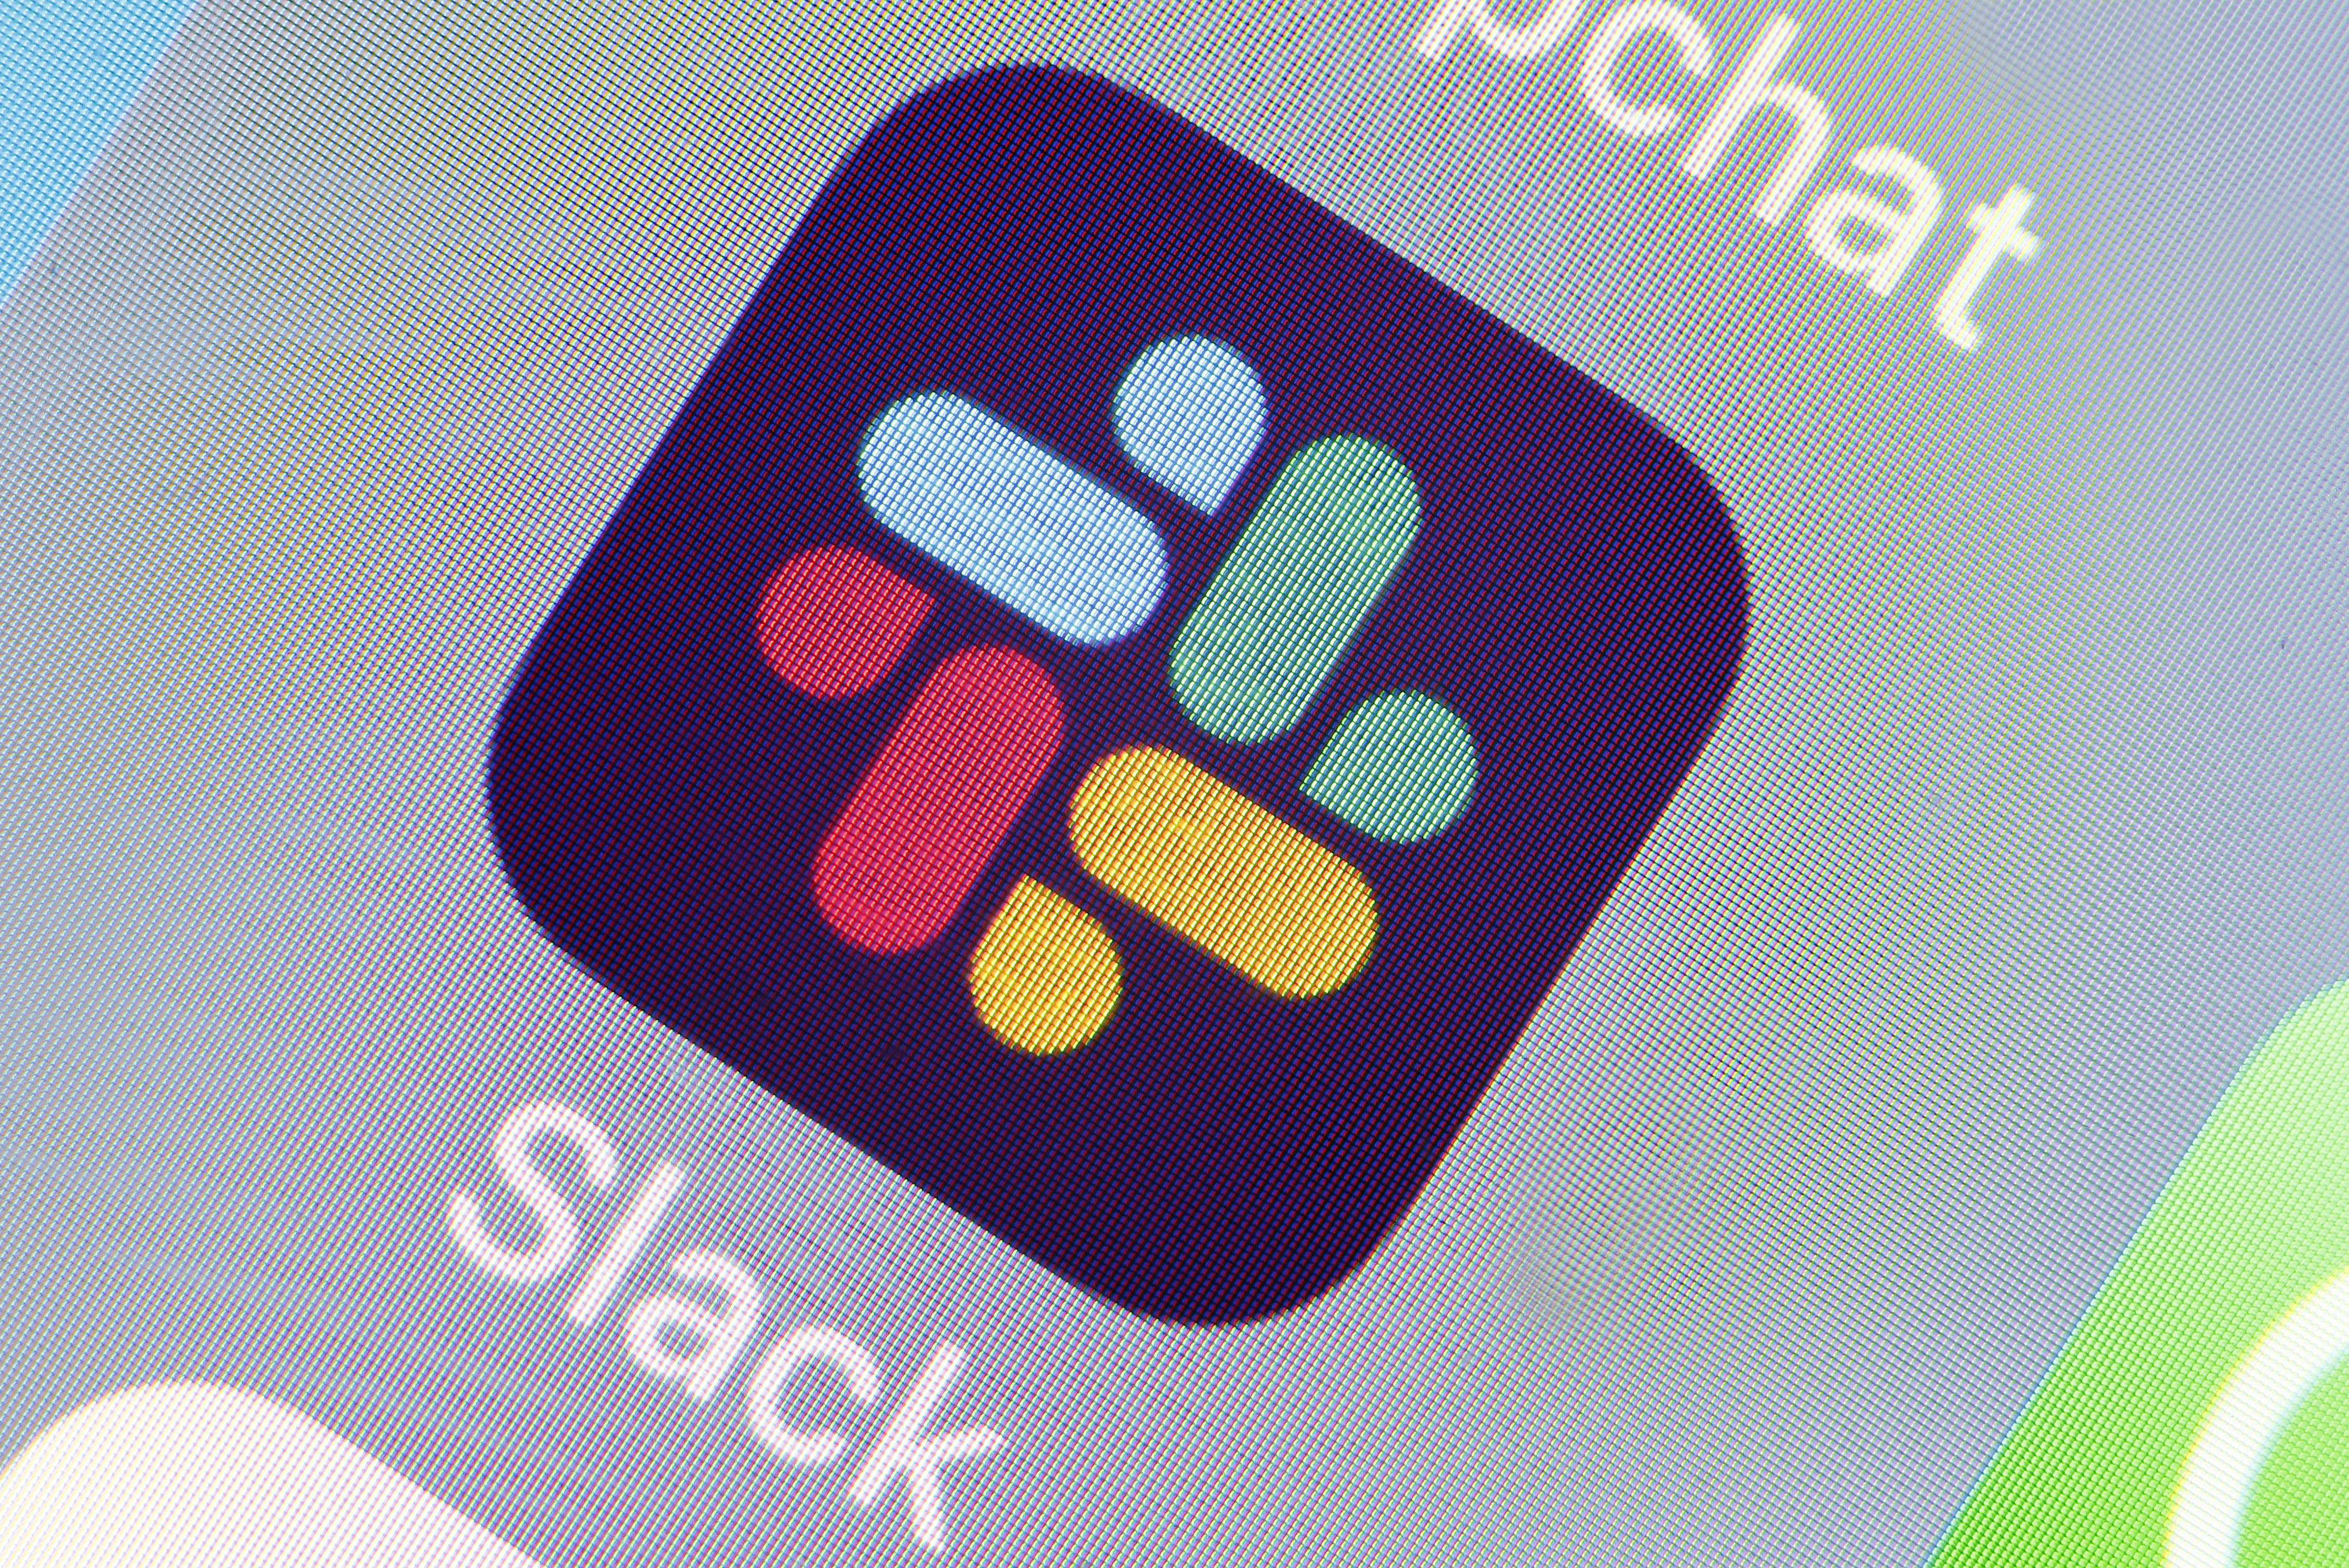 The Slack icon on a phone screen.